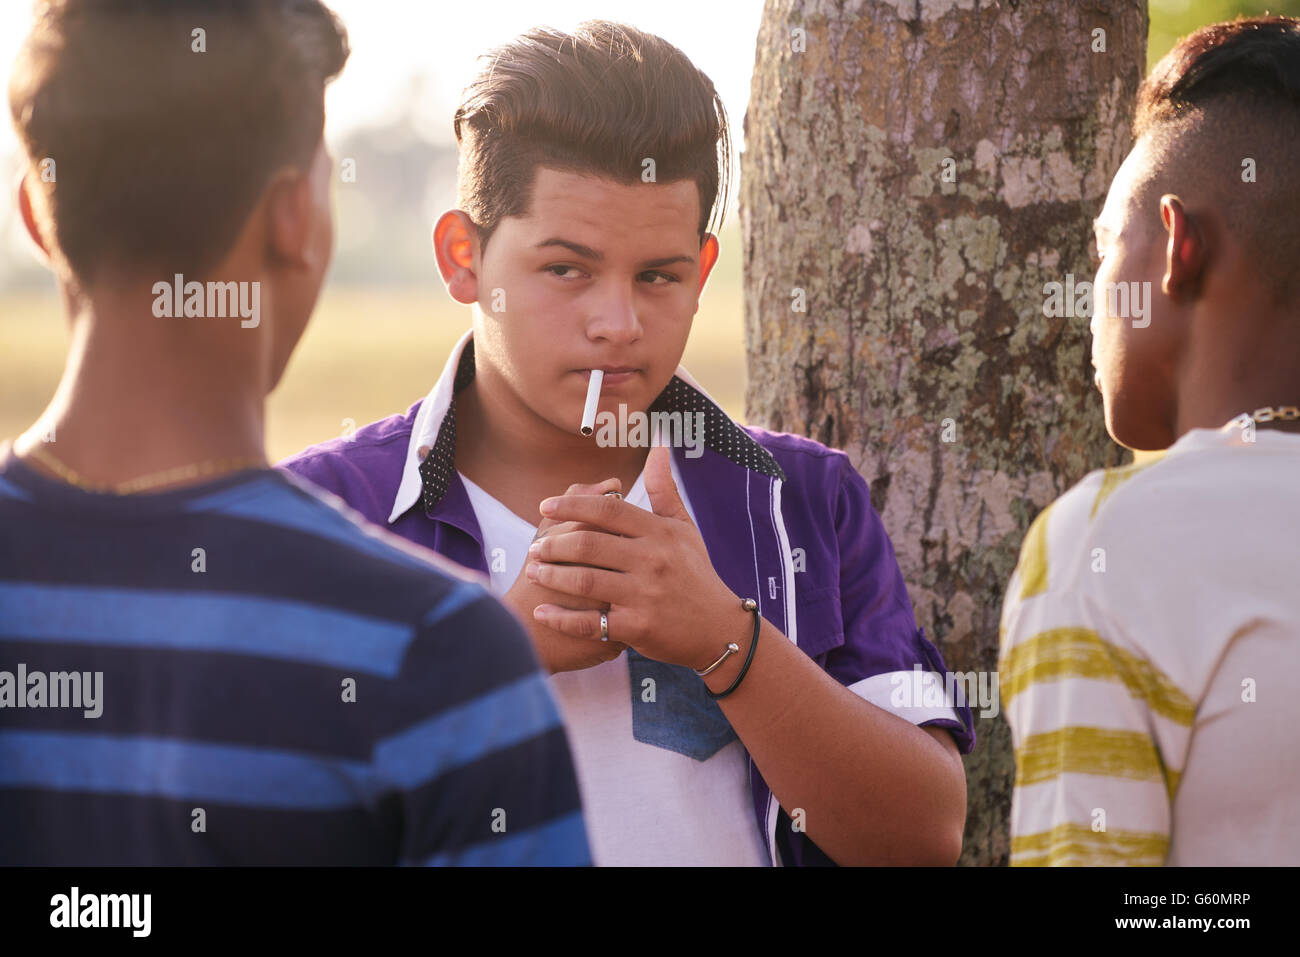 Kids smoking cigarettes